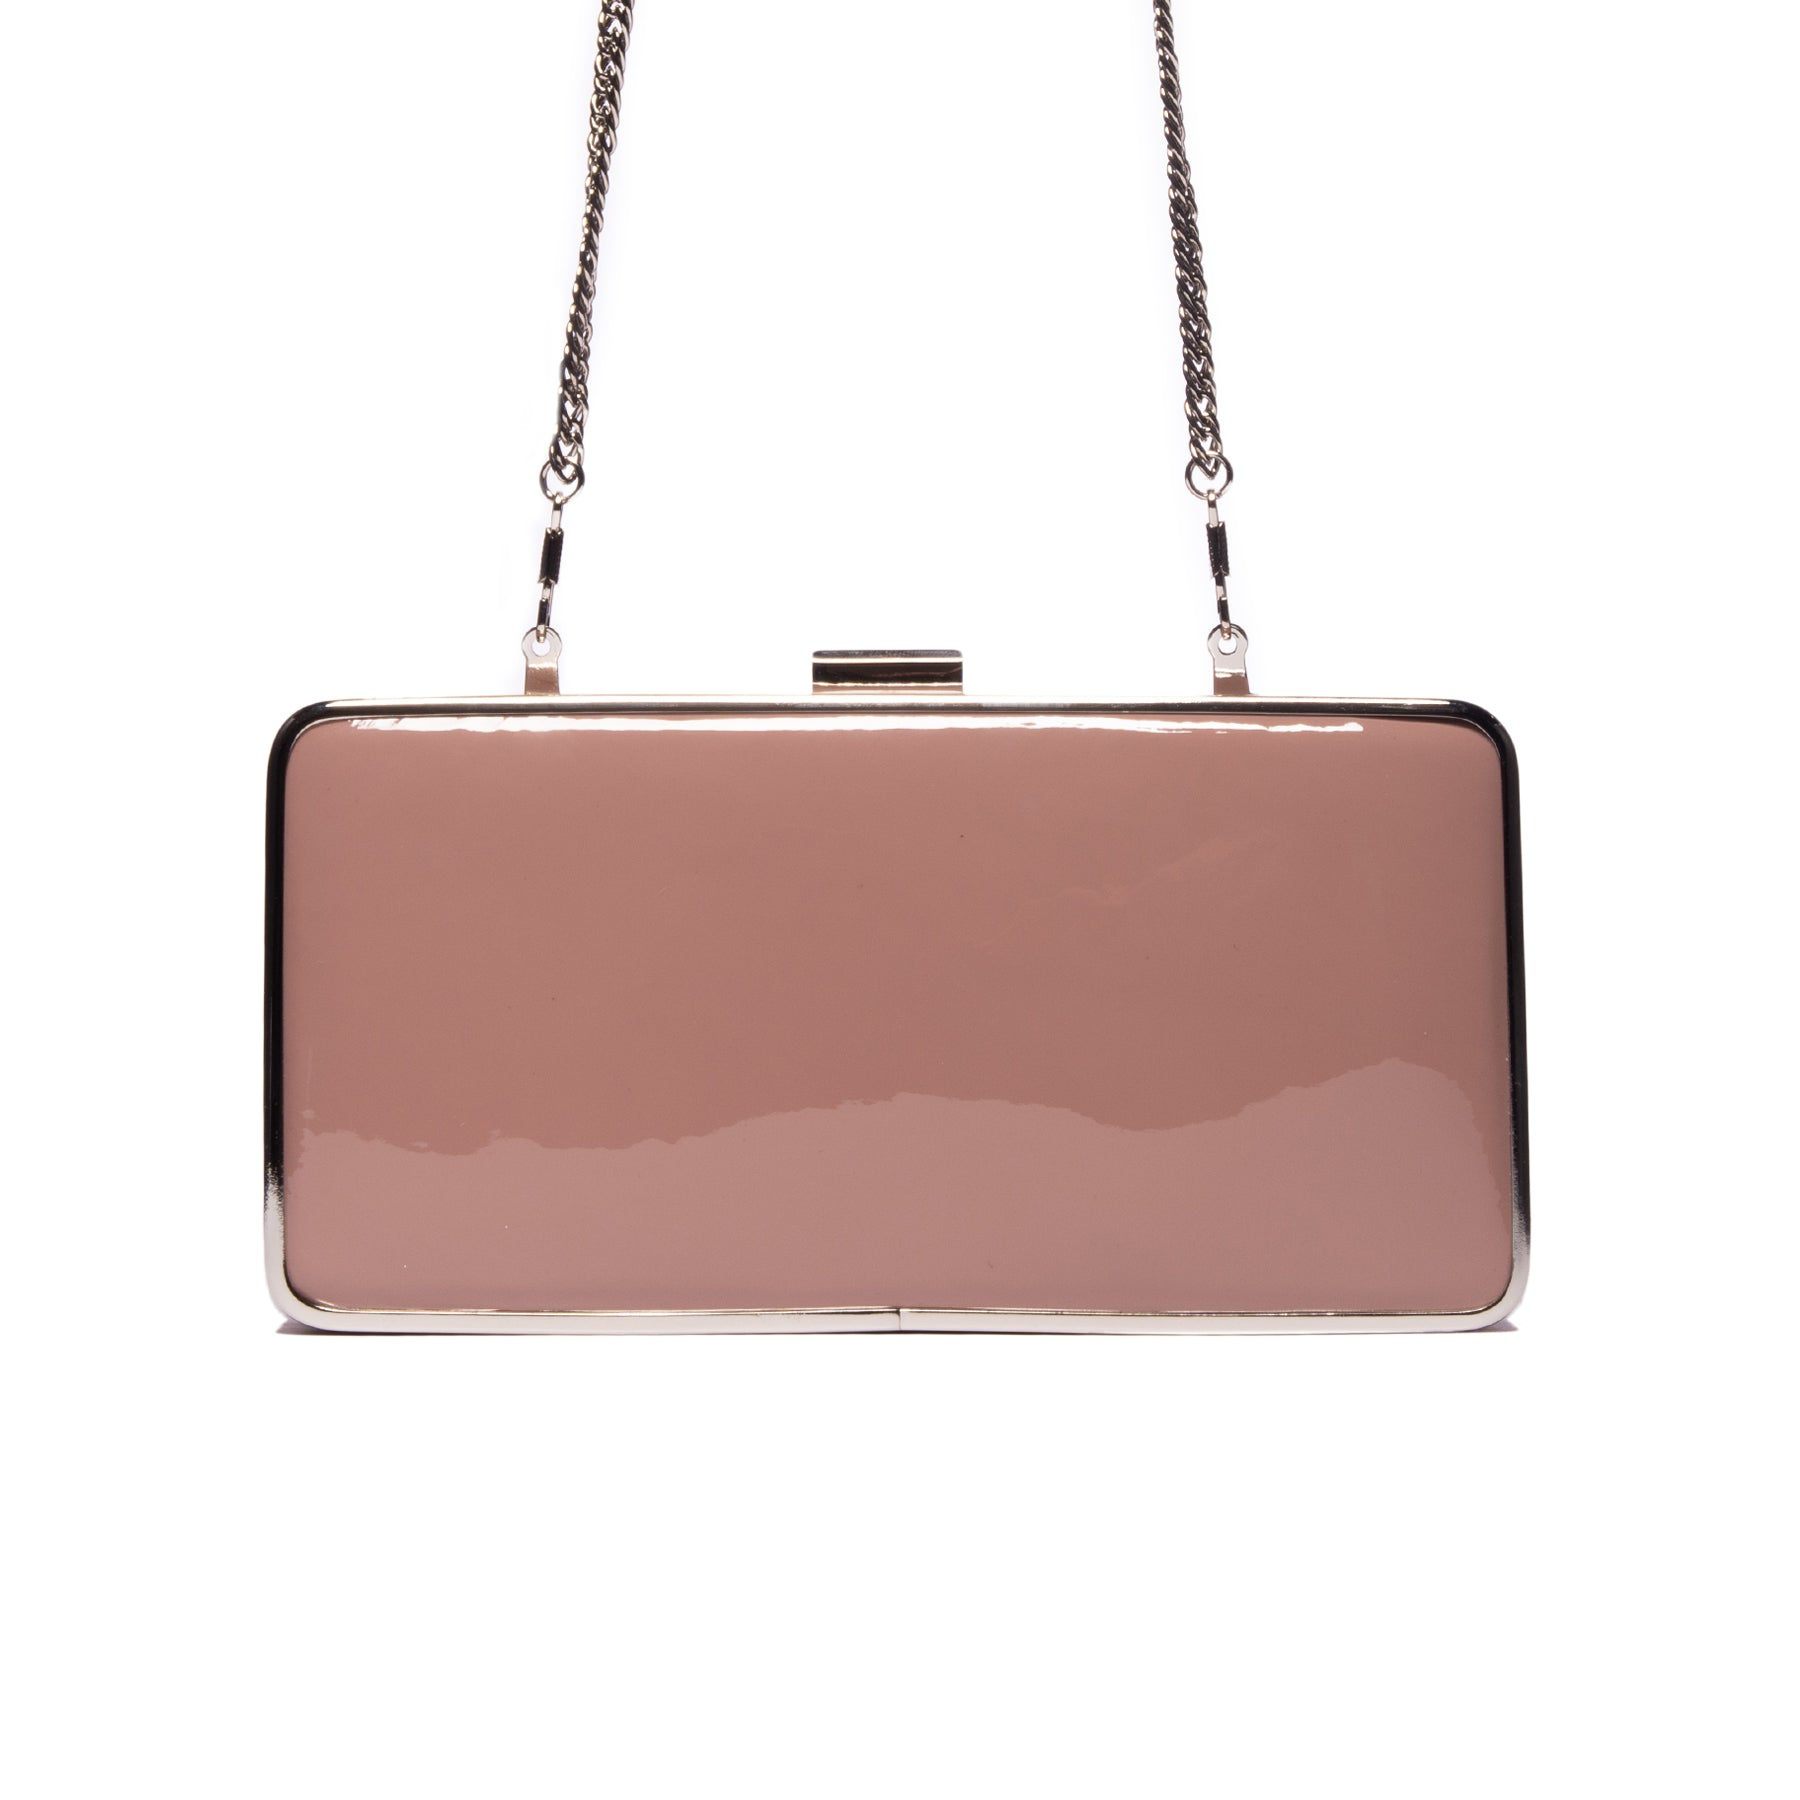 Theodore Nude Patent Leather Clutch